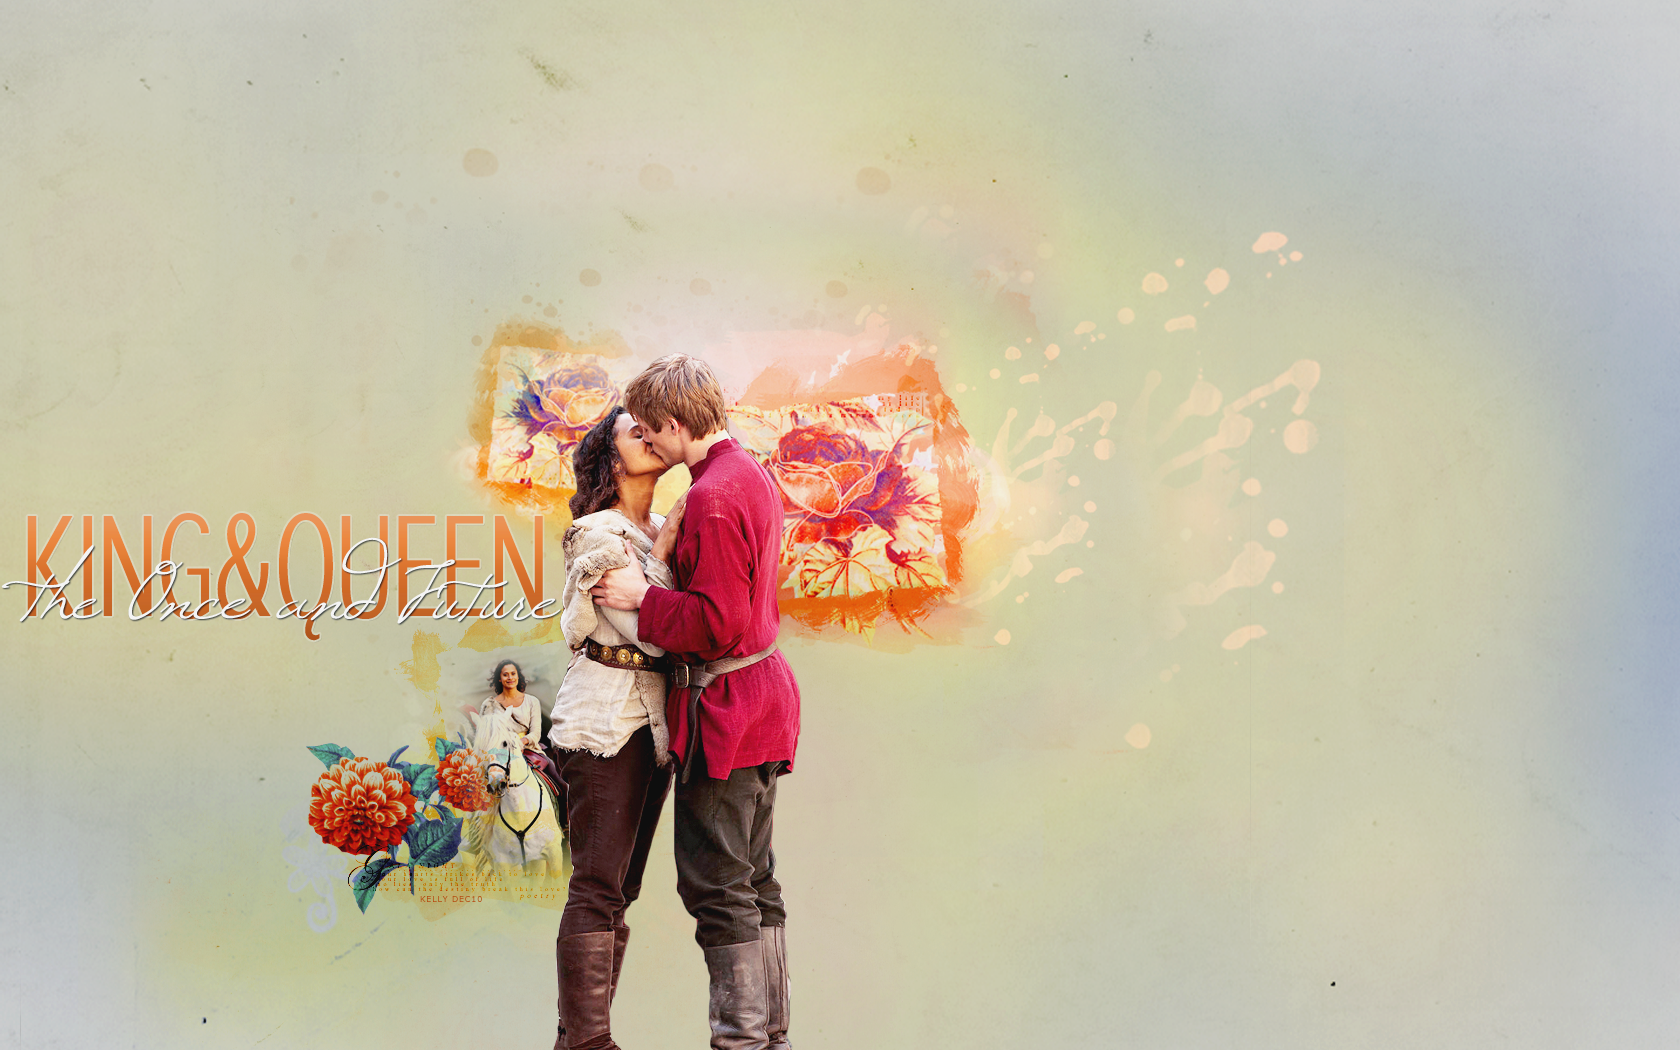 Merveilleux Camelot Love Images Arwen, King And Queen HD Wallpaper And Background Photos